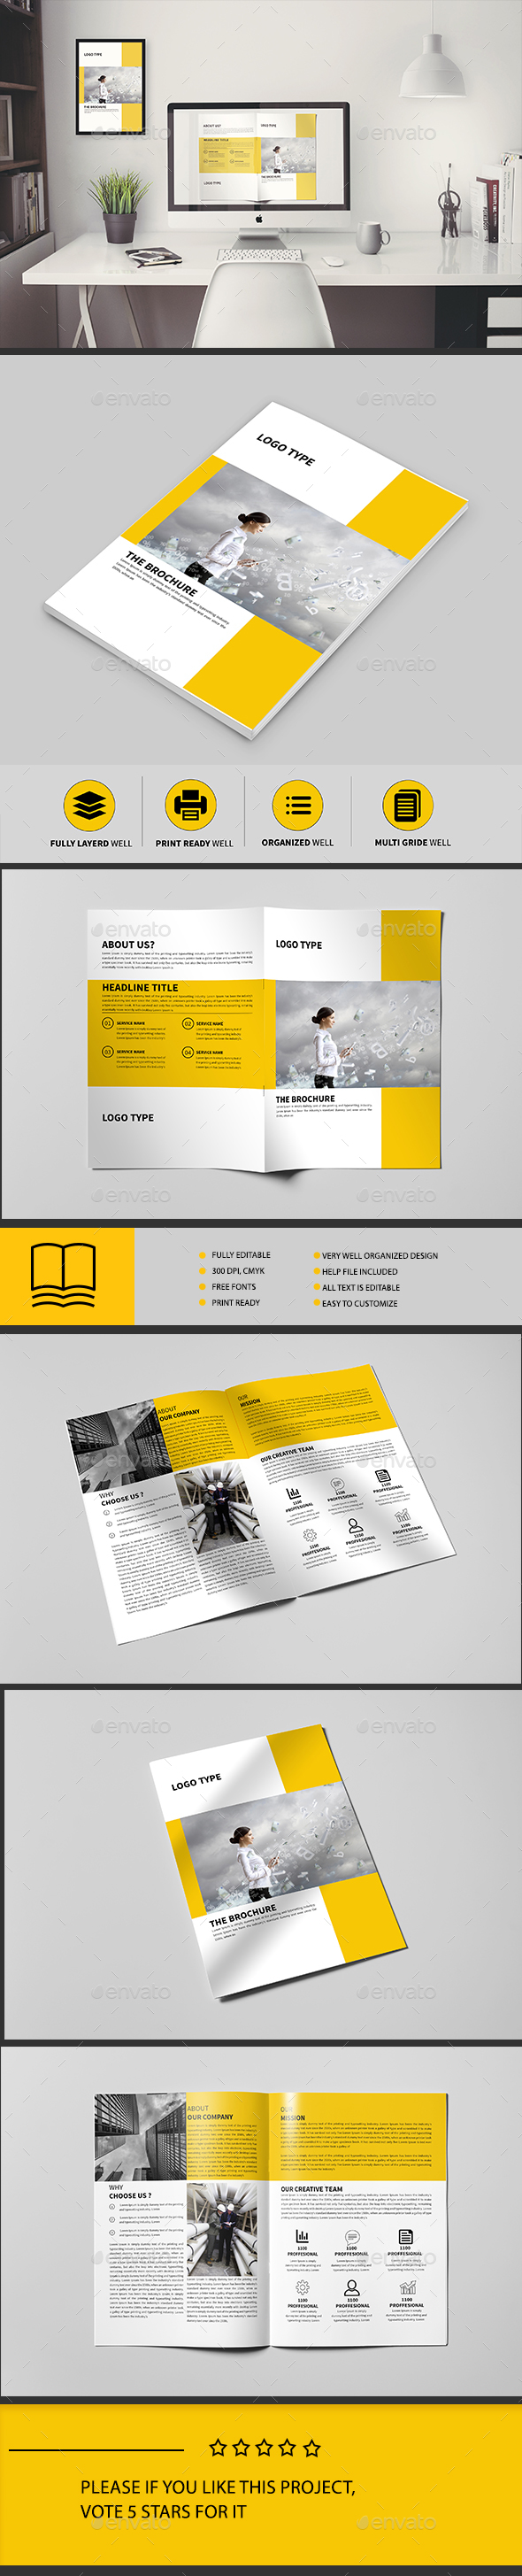 corporate bi fold brochure template indesign indd download here httpsgraphicrivernetitemcorporate bifold brochure 0417547863refksioks - Bi Fold Brochure Template Indesign Free